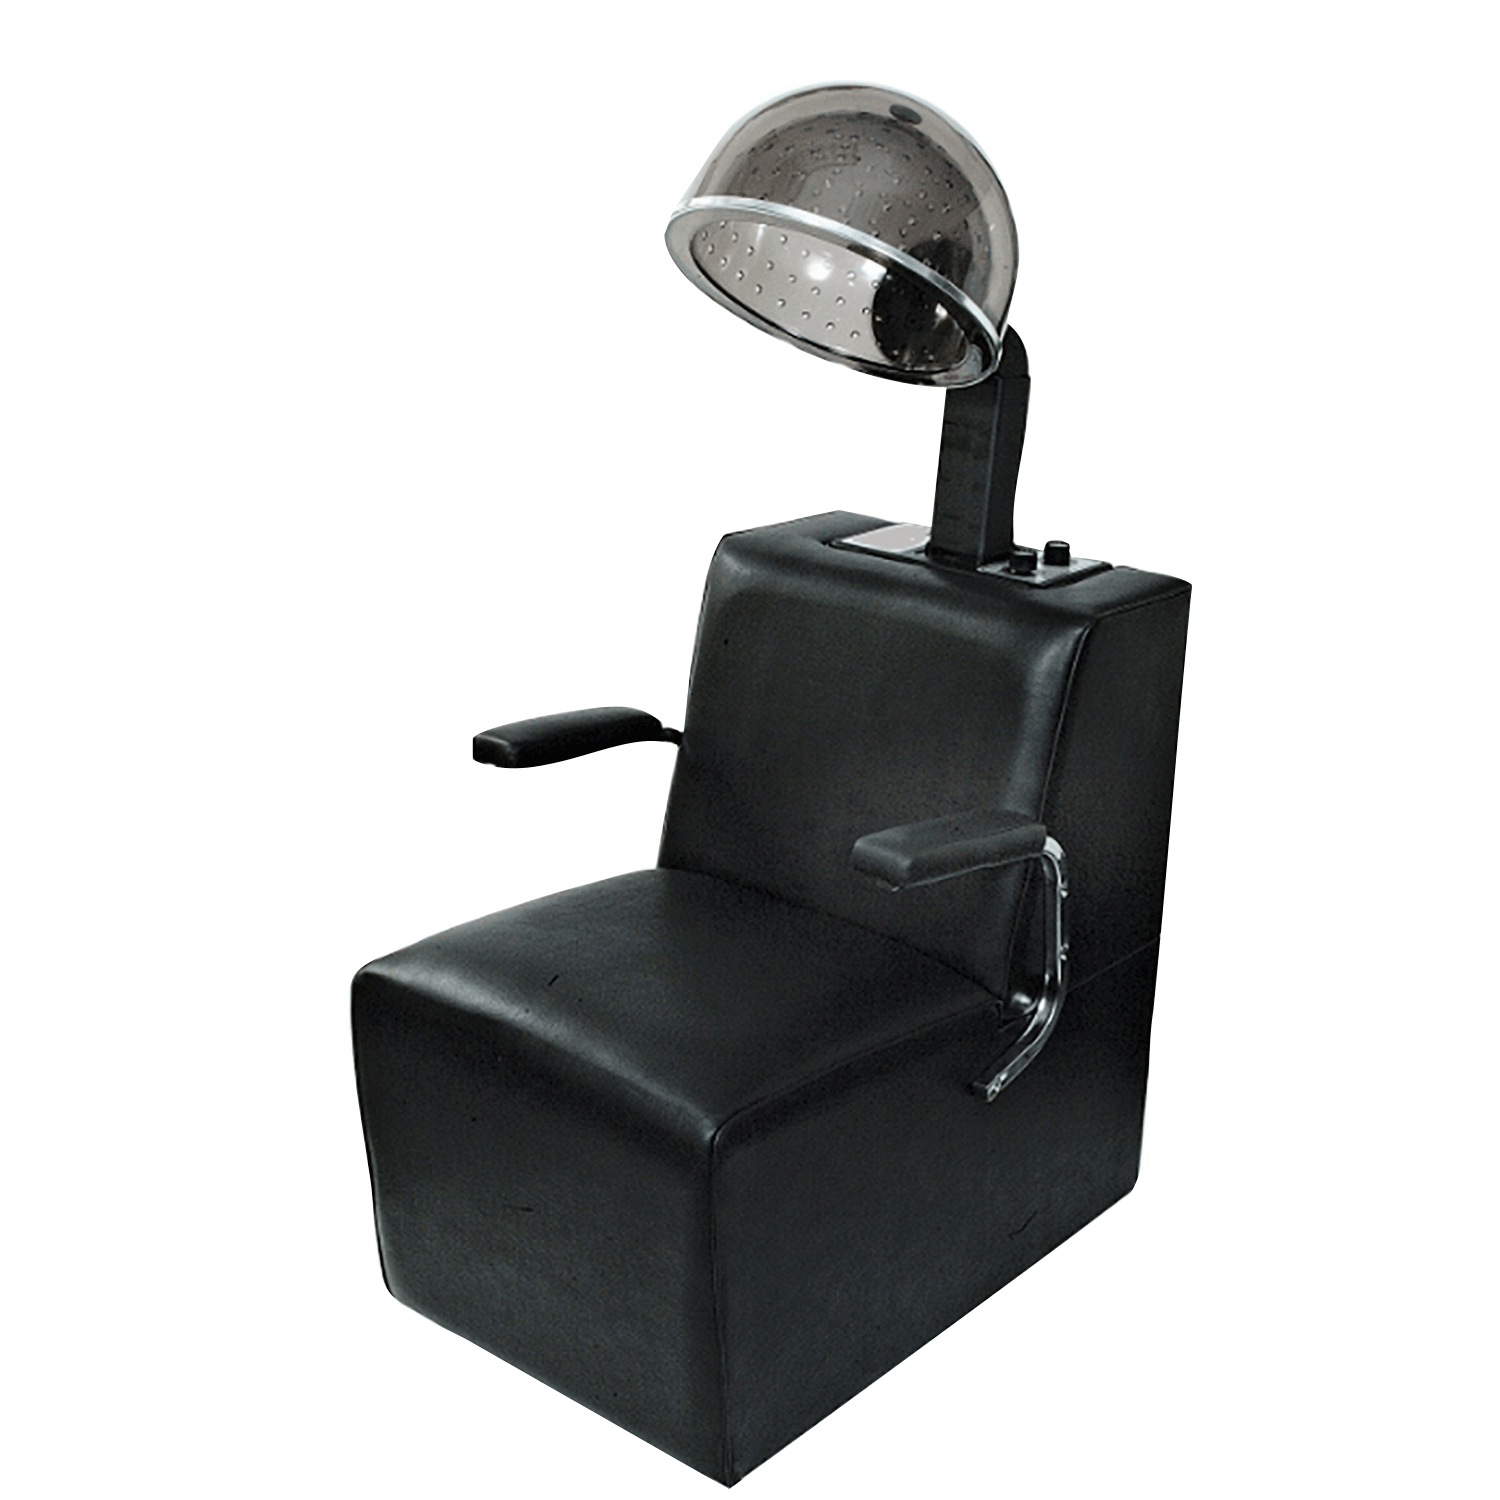 Venus Plus Hair Dryer With Platform Base Dryer Chair